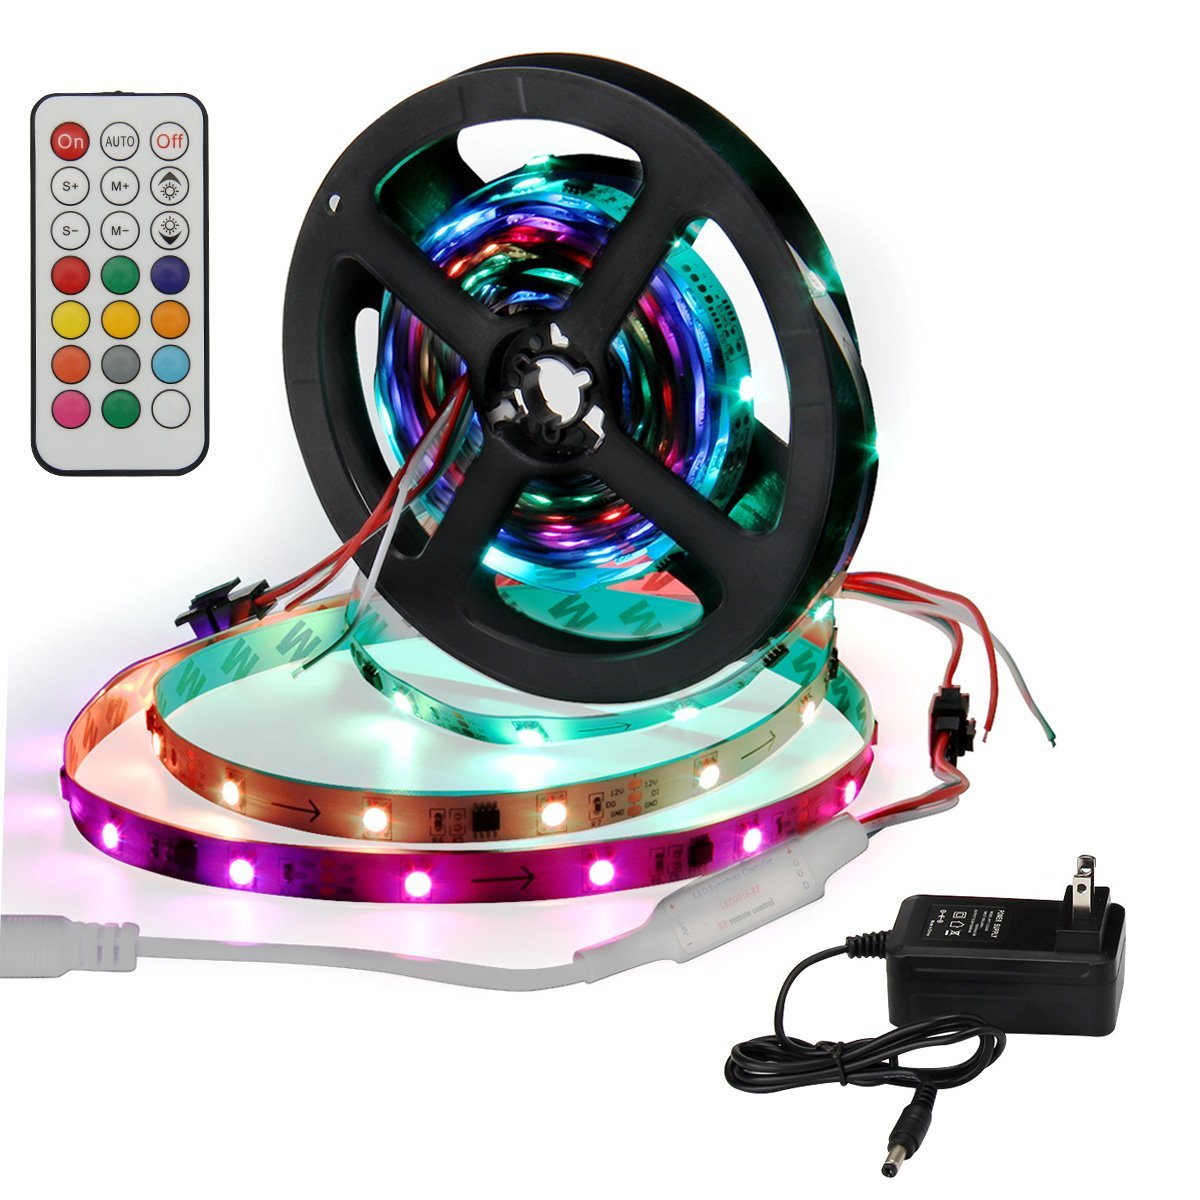 SUPERNIGHT IC 2811 Strip Light Individual Programmable Addressable 16.4ft 5050 RGB Dream Color 150led Rope Lights (Non-waterproof) with Remote Controller + Power Supply Adapter